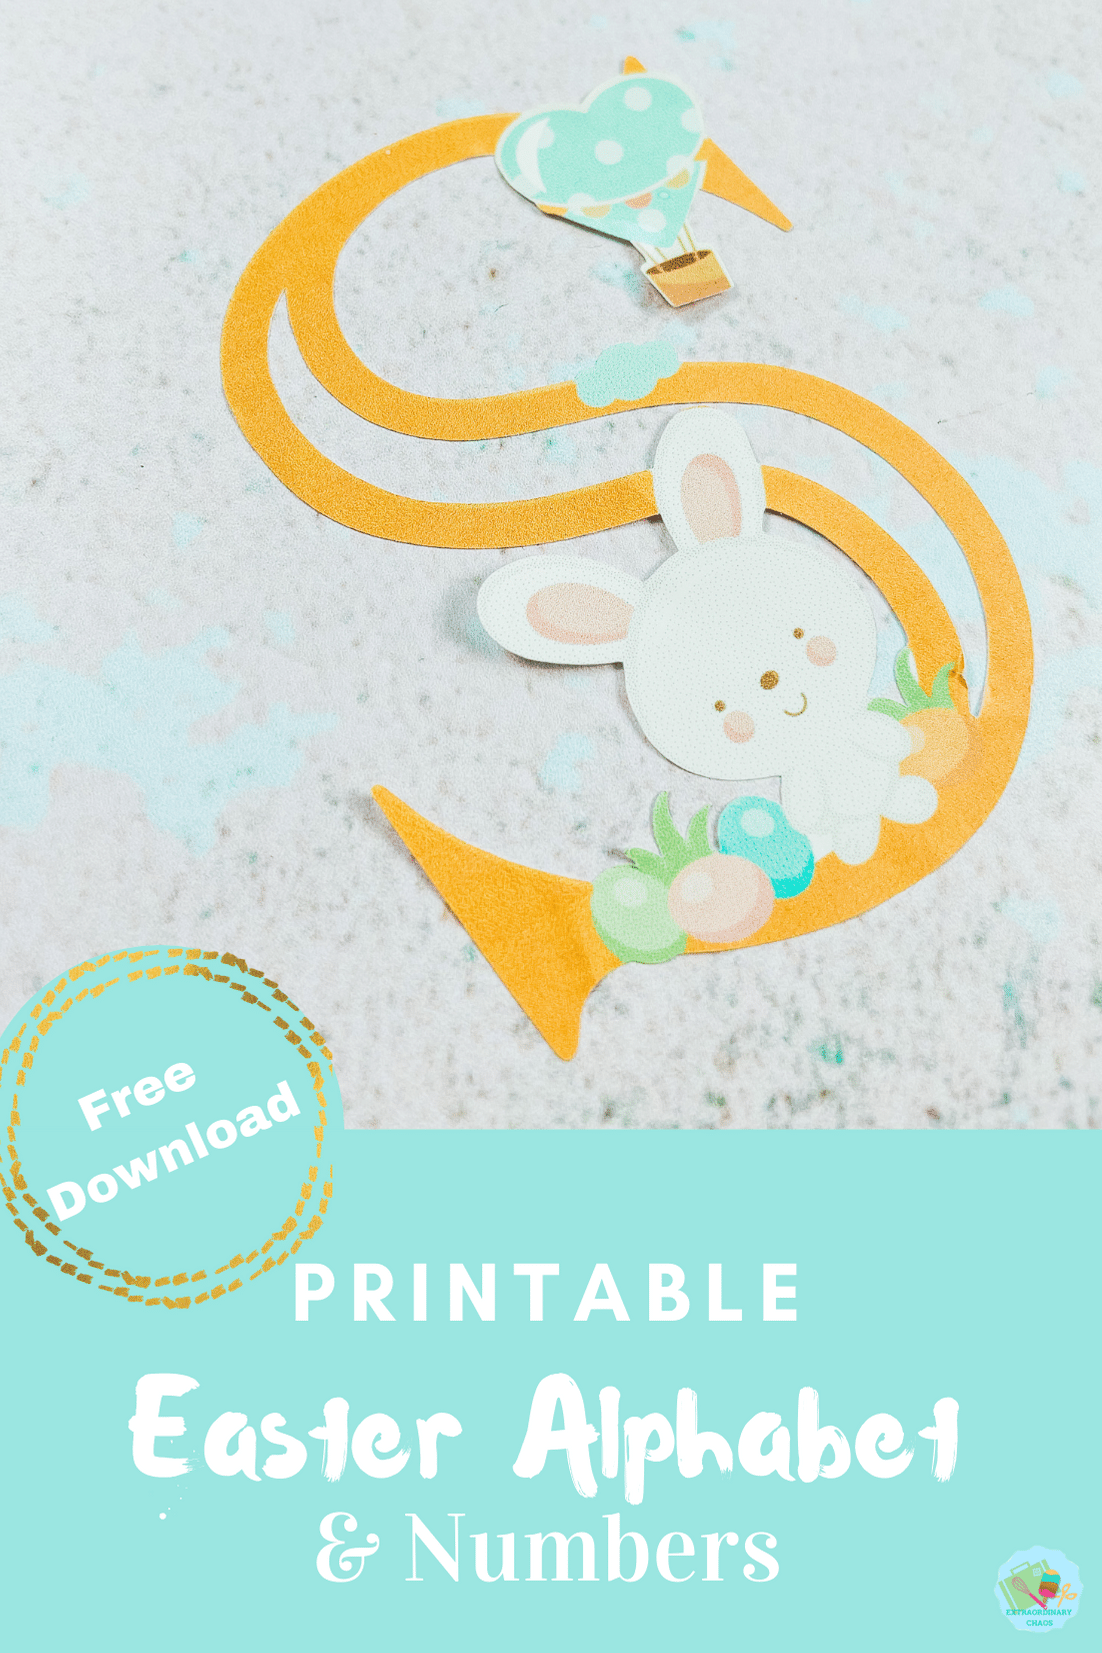 Free downloadable Print and Cut New Easter Alphabet for print and cut out by hand or print and cut with Cricut